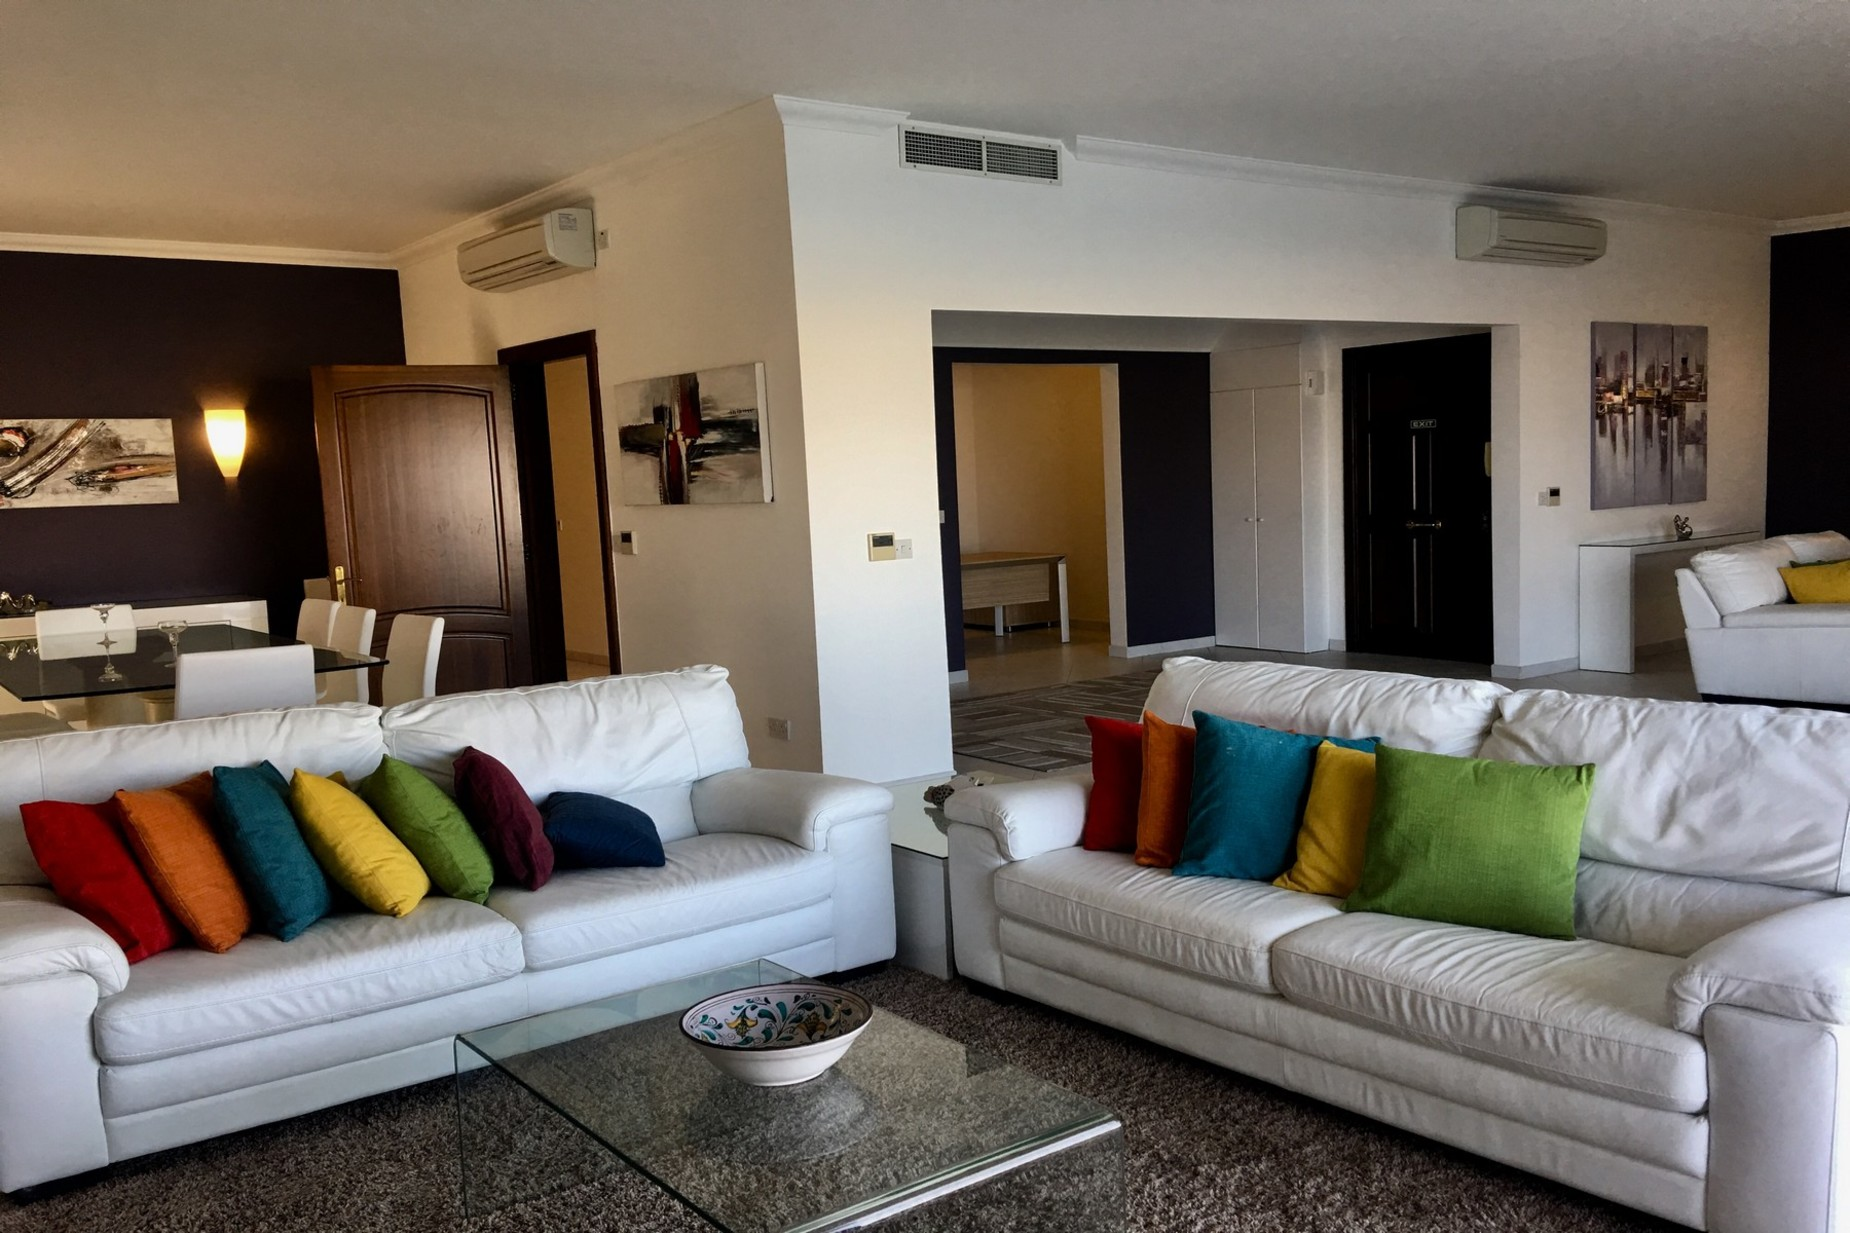 4 bed Apartment For Rent in Sliema, Sliema - thumb 2